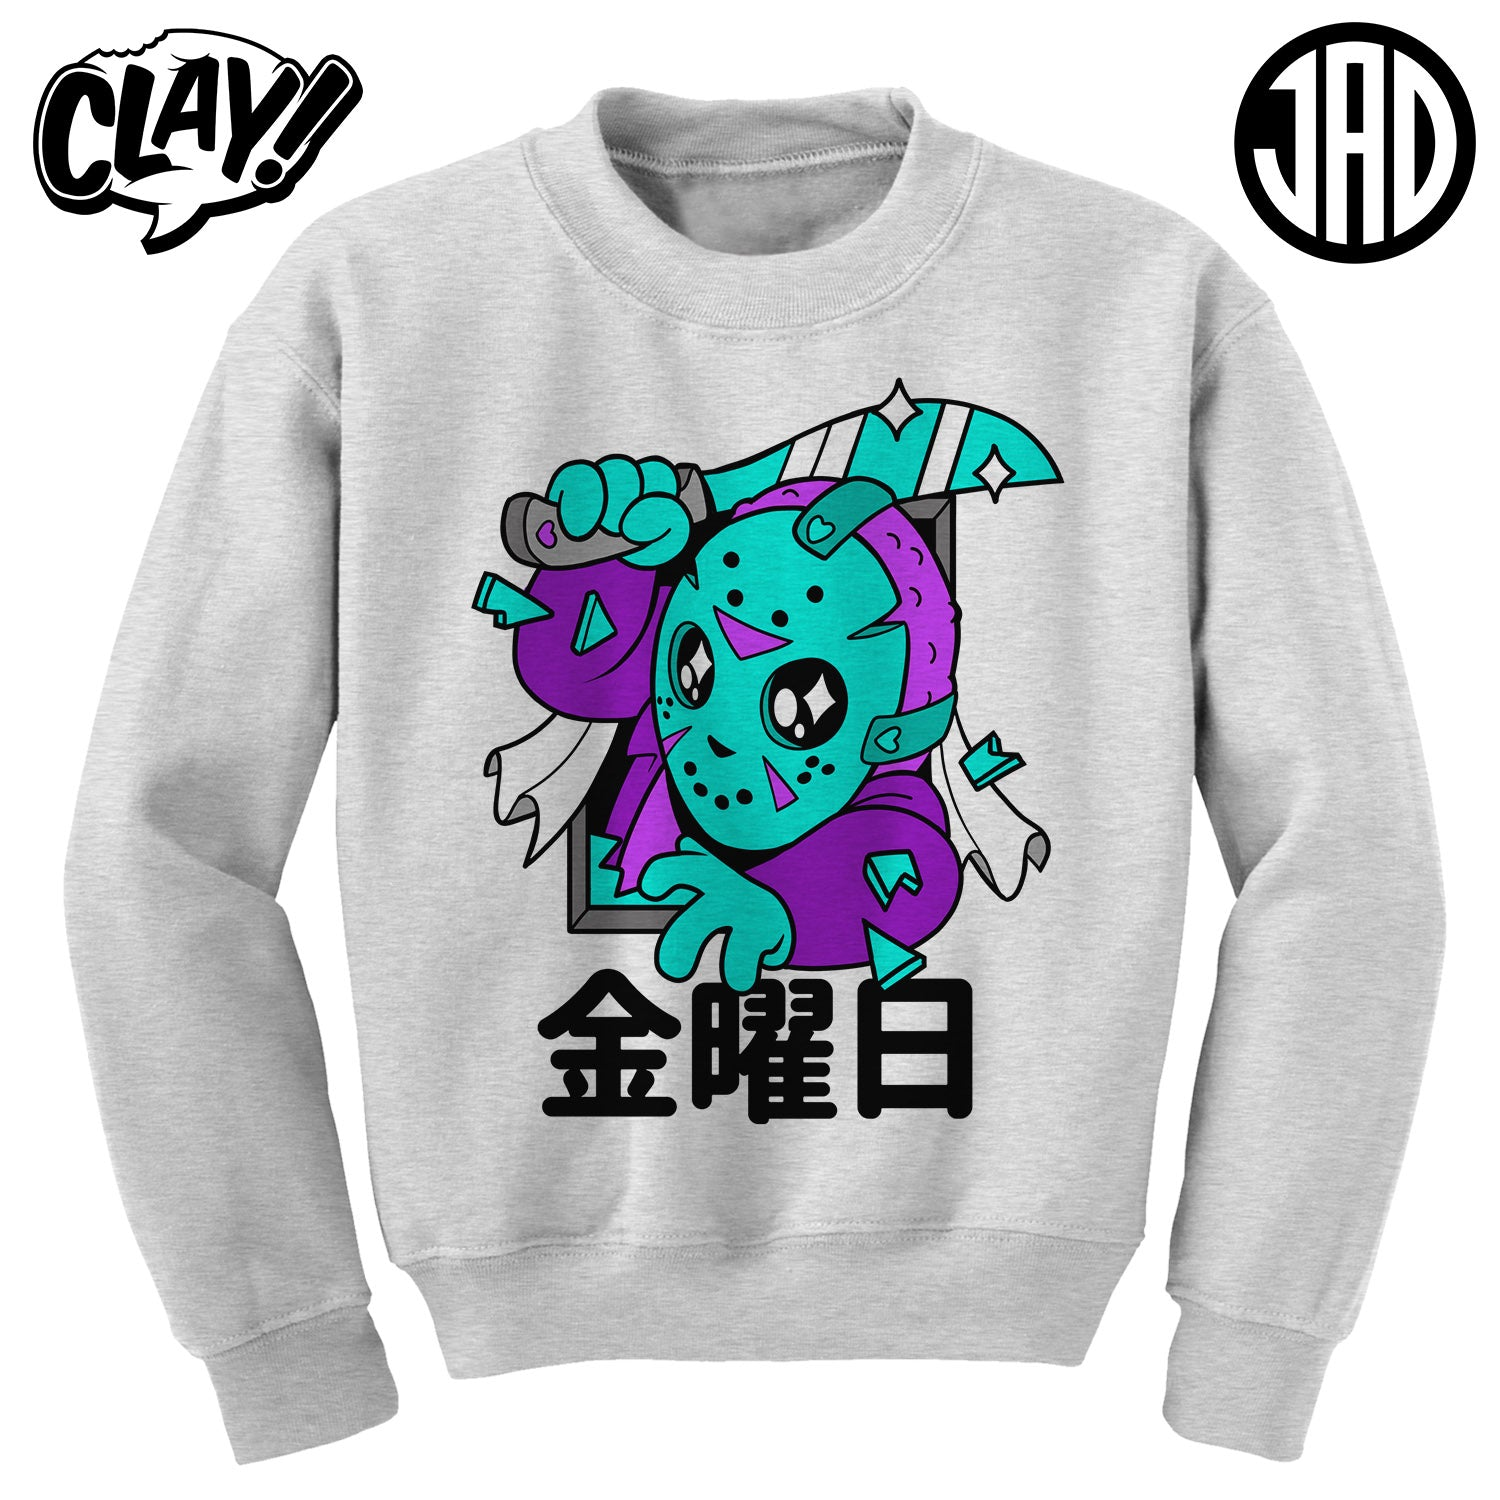 Camp Killer Jason NES - Crewneck Sweater